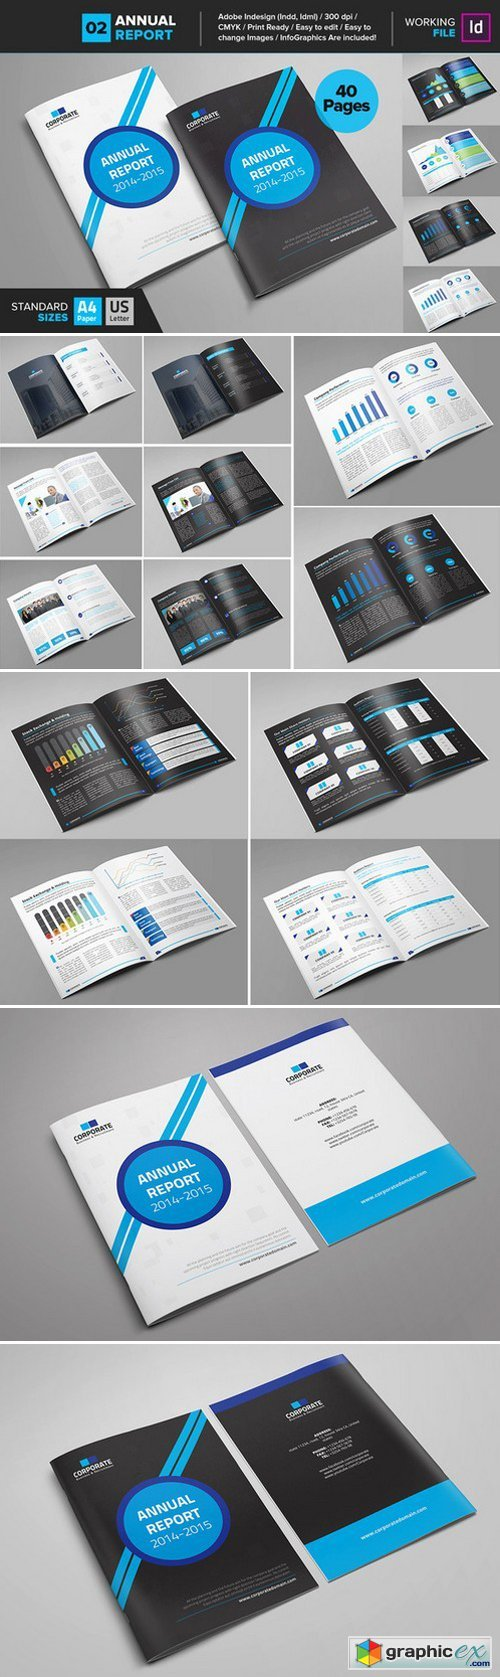 Clean Corporate Annual Report_V2